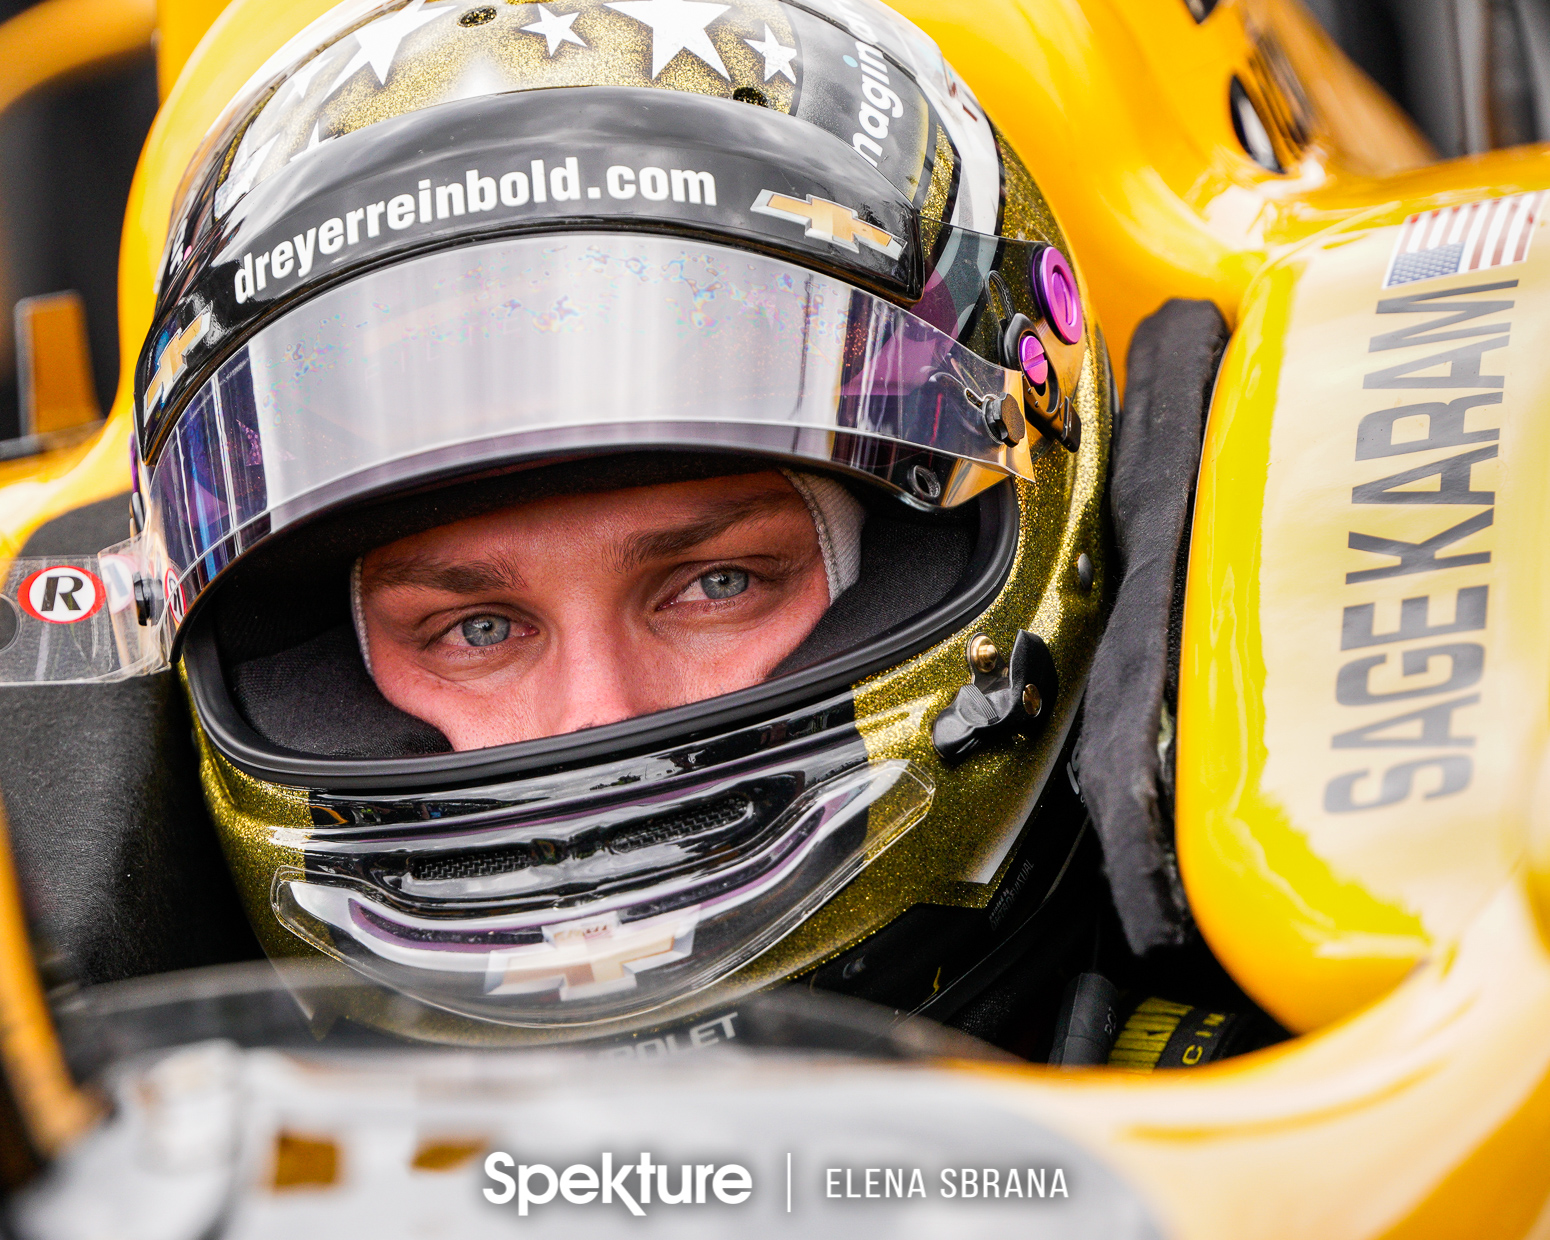 Earchphoto Sports - Sage Karam in the car for the last row shootout